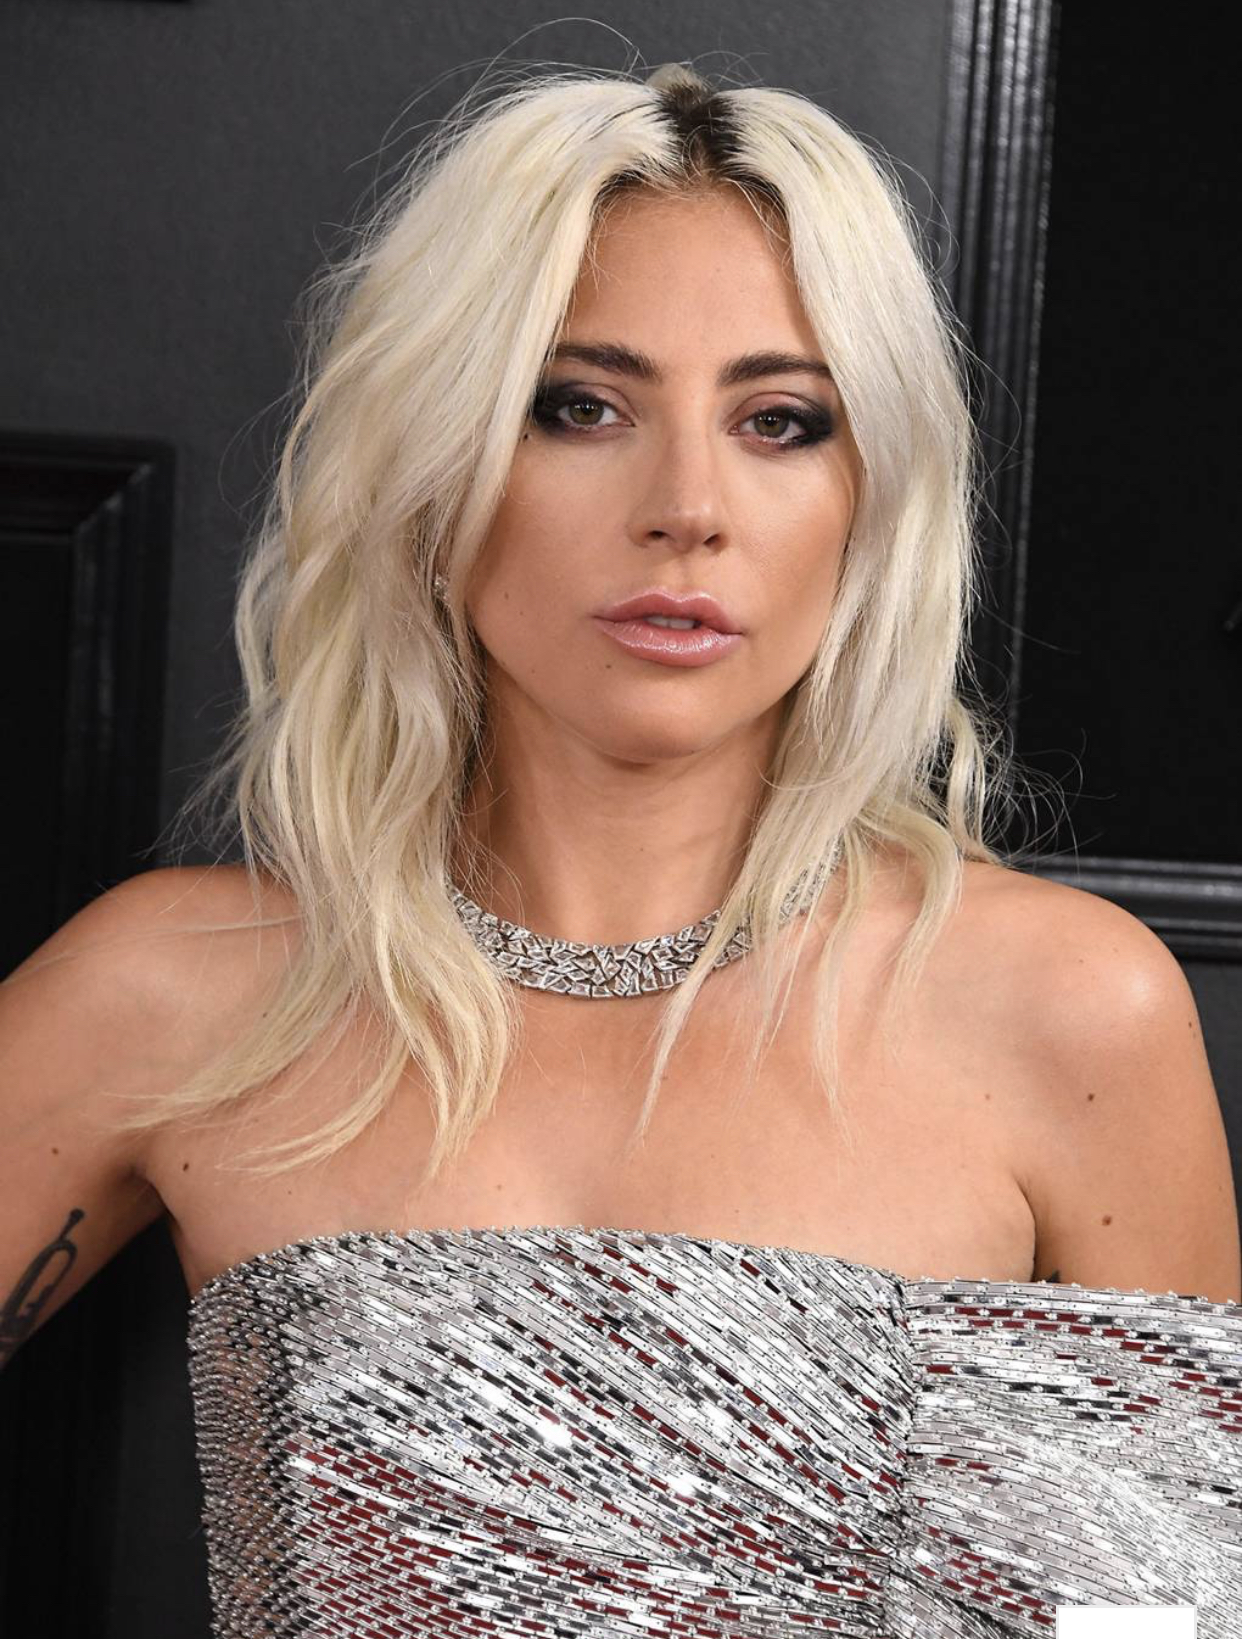 Lady Gaga wore a Tiffany & Co. necklace with reportedly over 100+ carats of diamonds. -